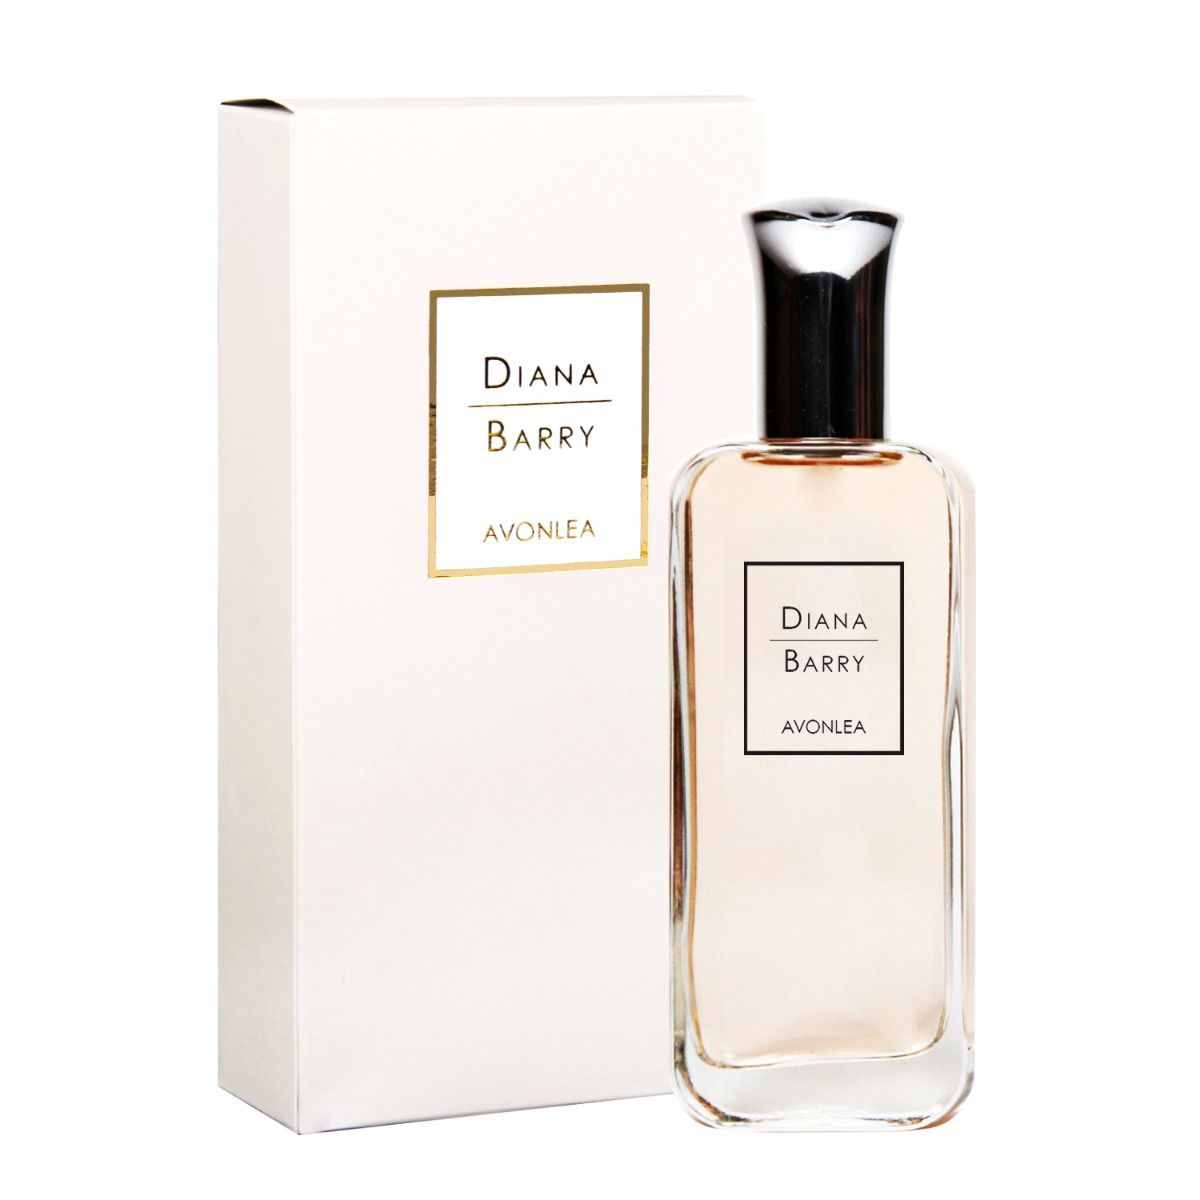 Diana Barry Perfume